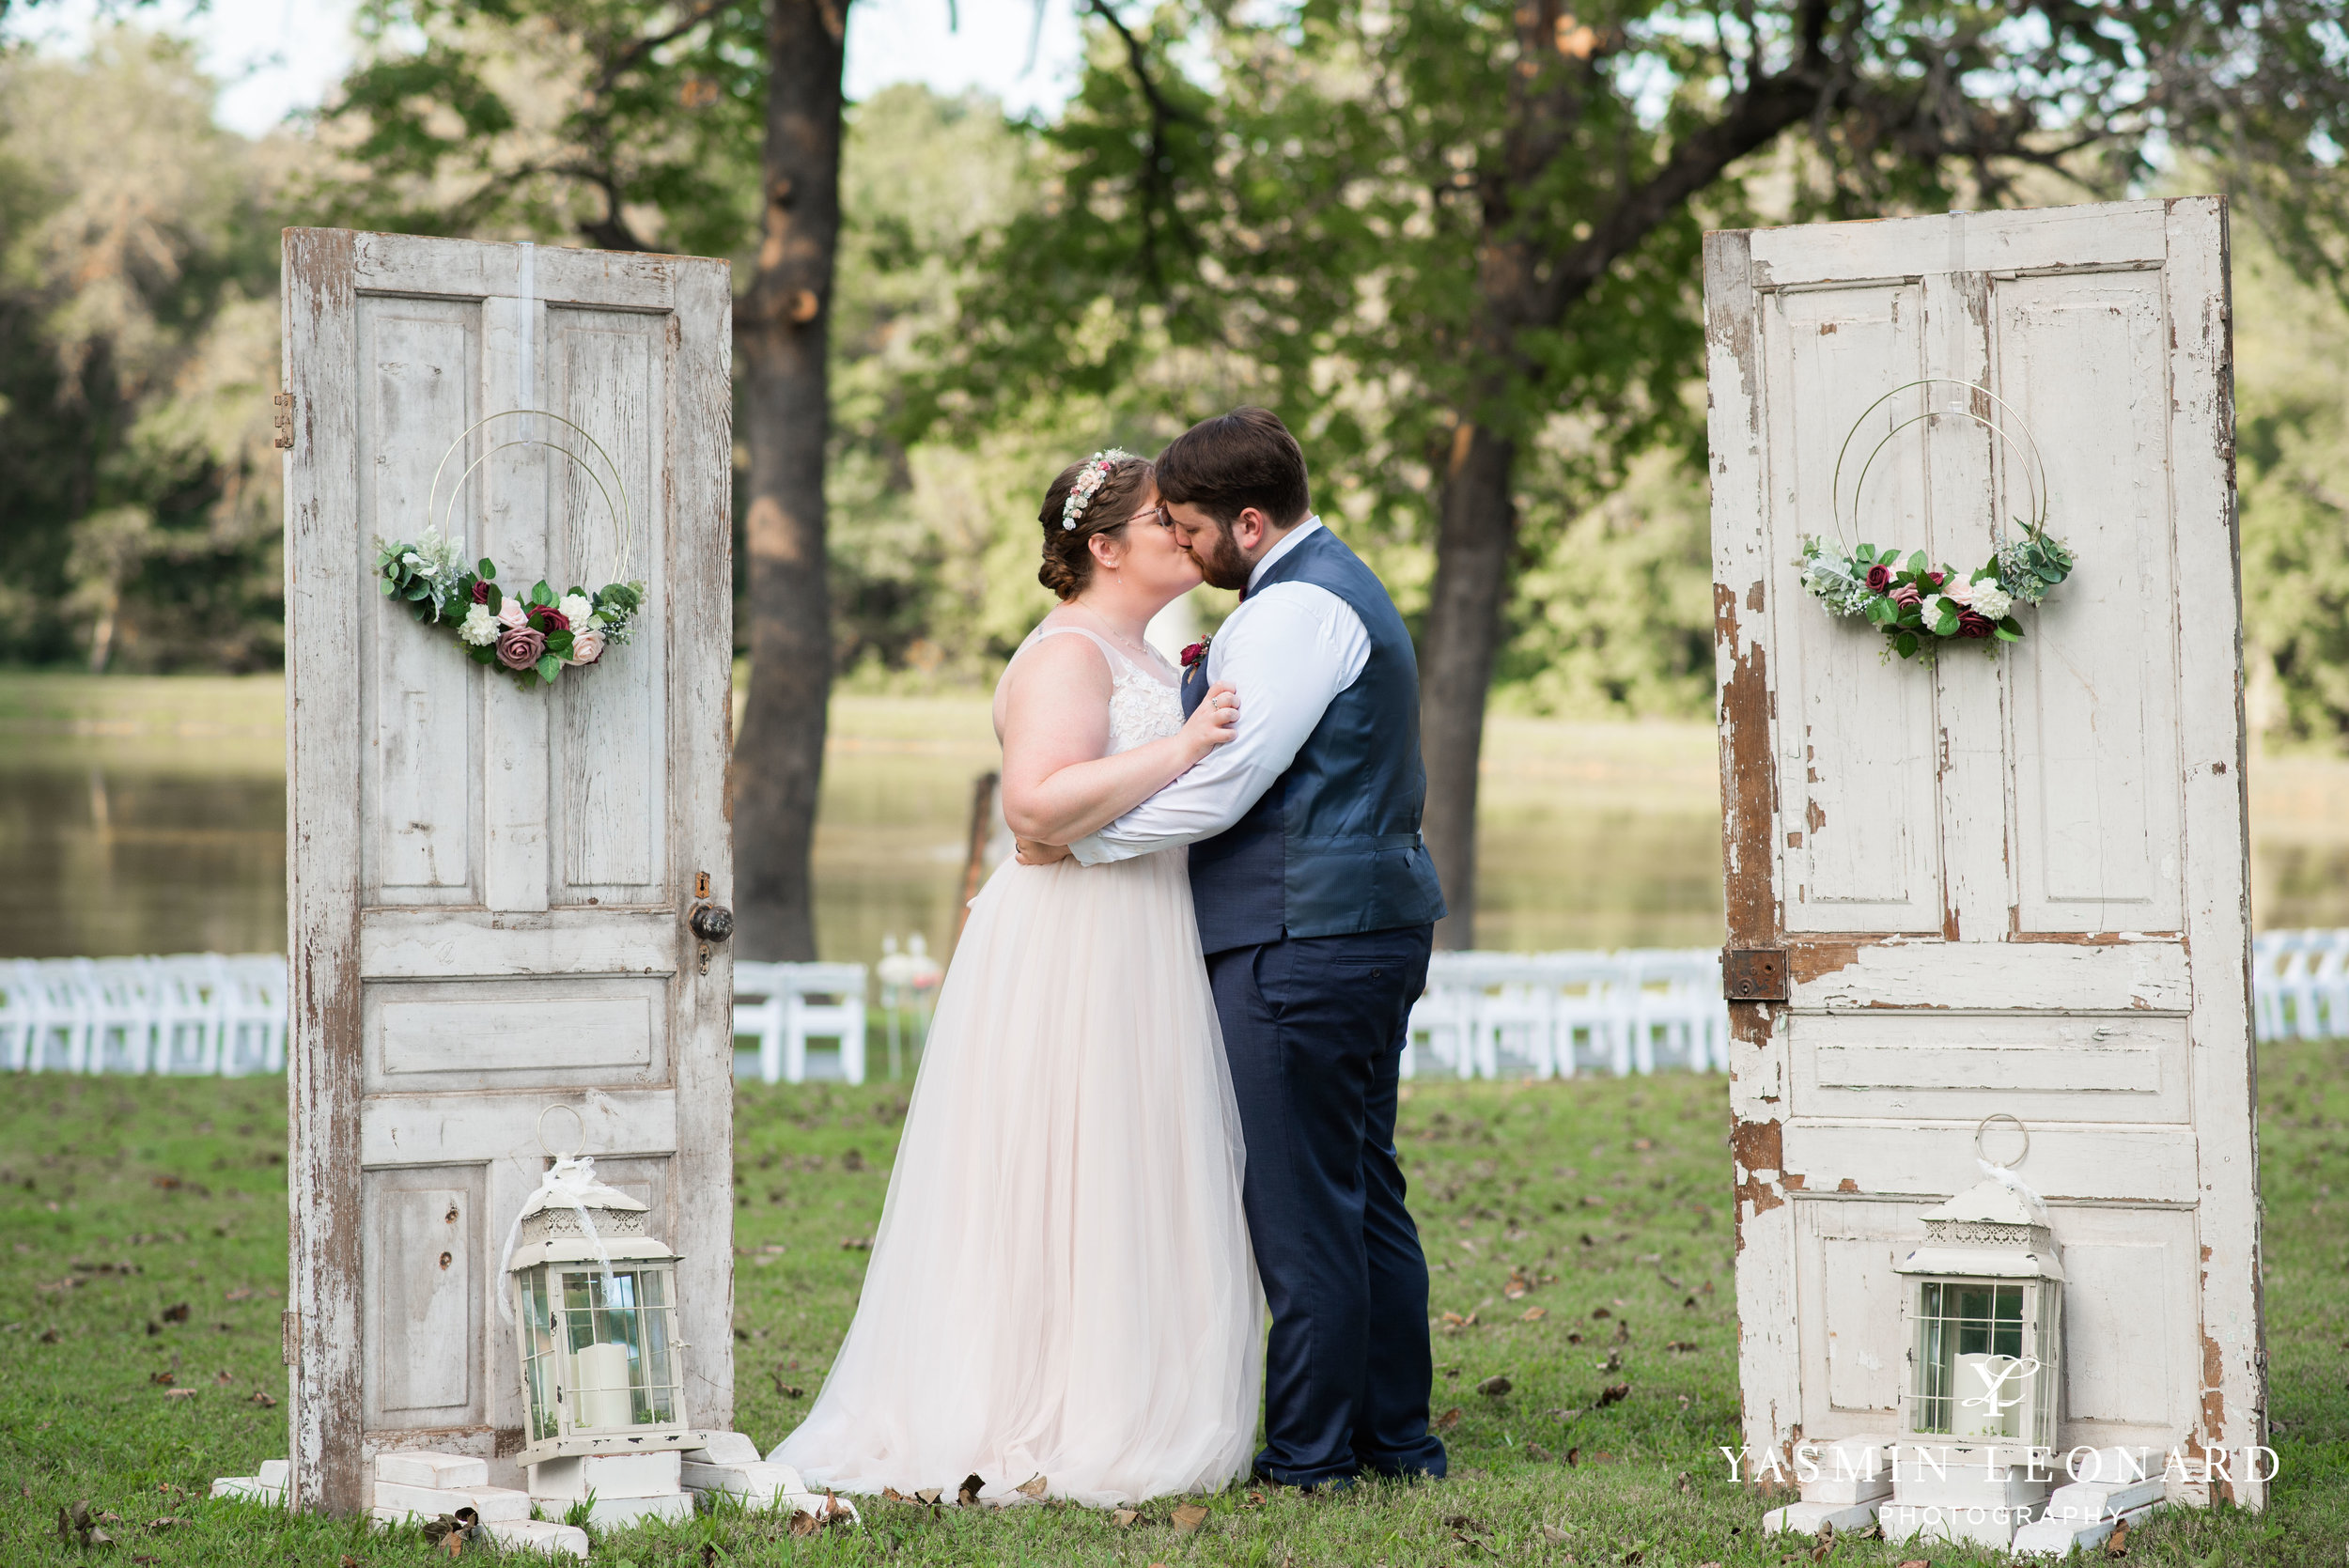 Hannah and David - l'abri at Linwood - NC Barn Weddings - Guys and Girls on Bride's Side - How to incorporate guys with bridesmaids - navy fall wedding - high point photographer - nc wedding venues - triad weddings-32.jpg